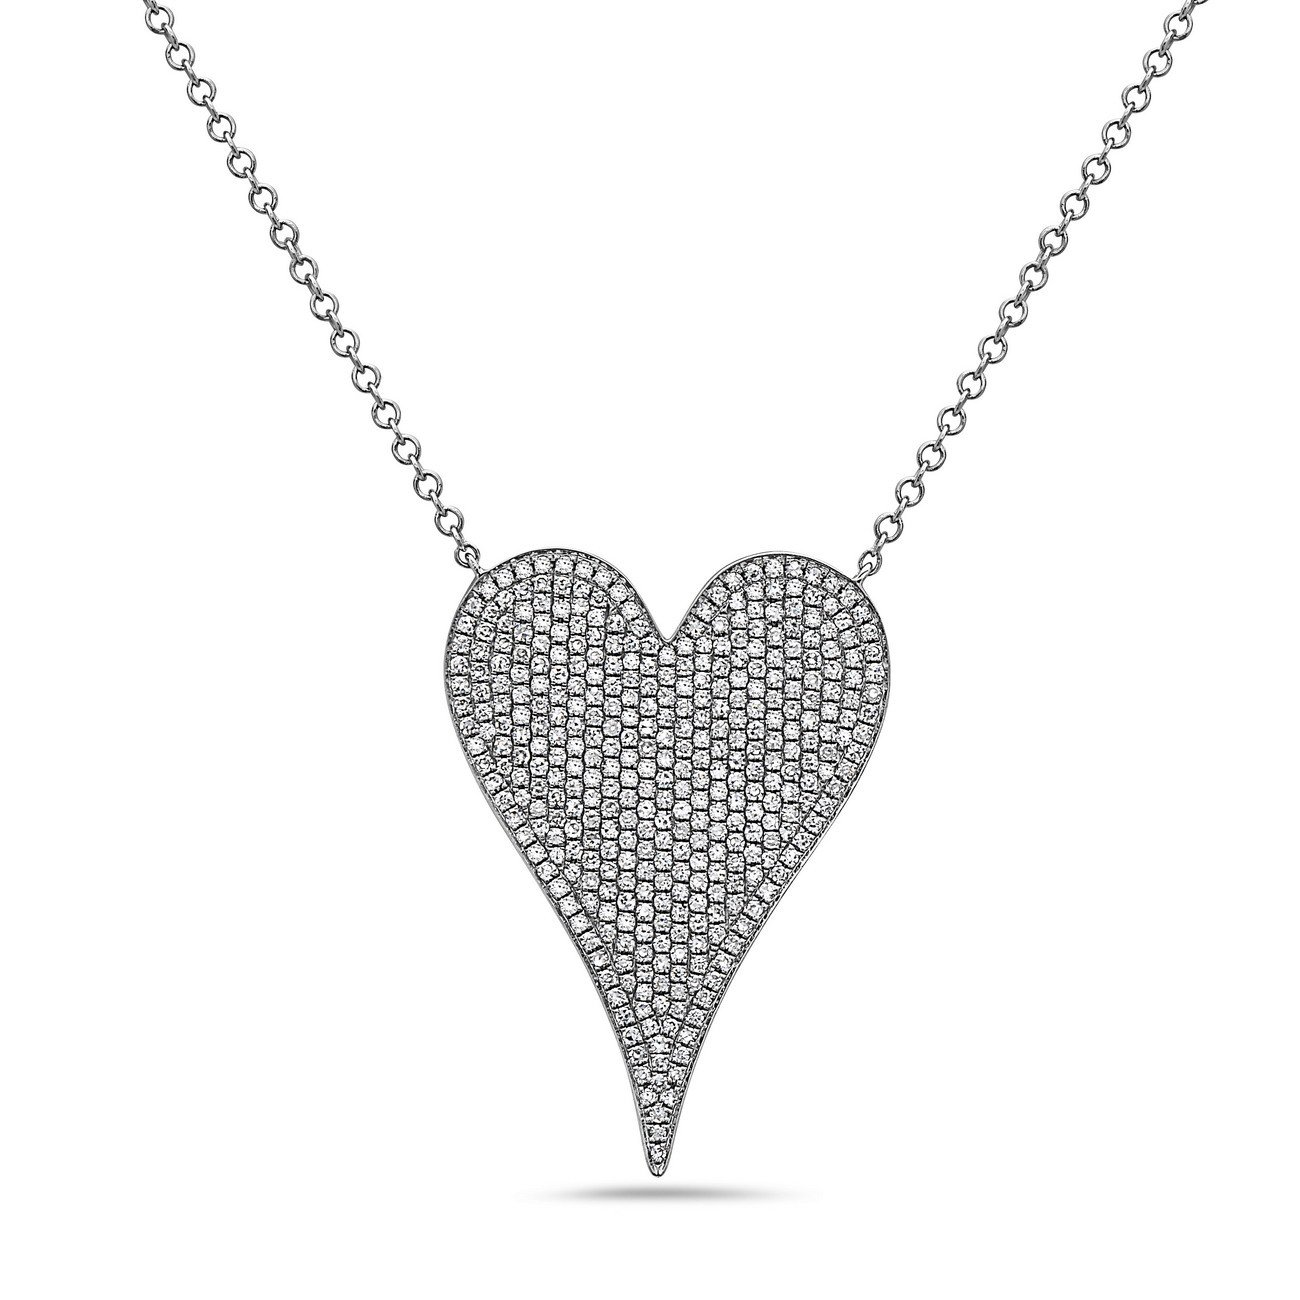 "14K White Gold Pave Diamond Heart Shaped Necklace | Timeless 14K Heart Slider Pendant w/ Pave set Diamonds | Diamond Weight 0.83 ct tw Color G/H Clarity-SI1 | Adj. 15 -18"" By Crush + Fancy (0.83)"